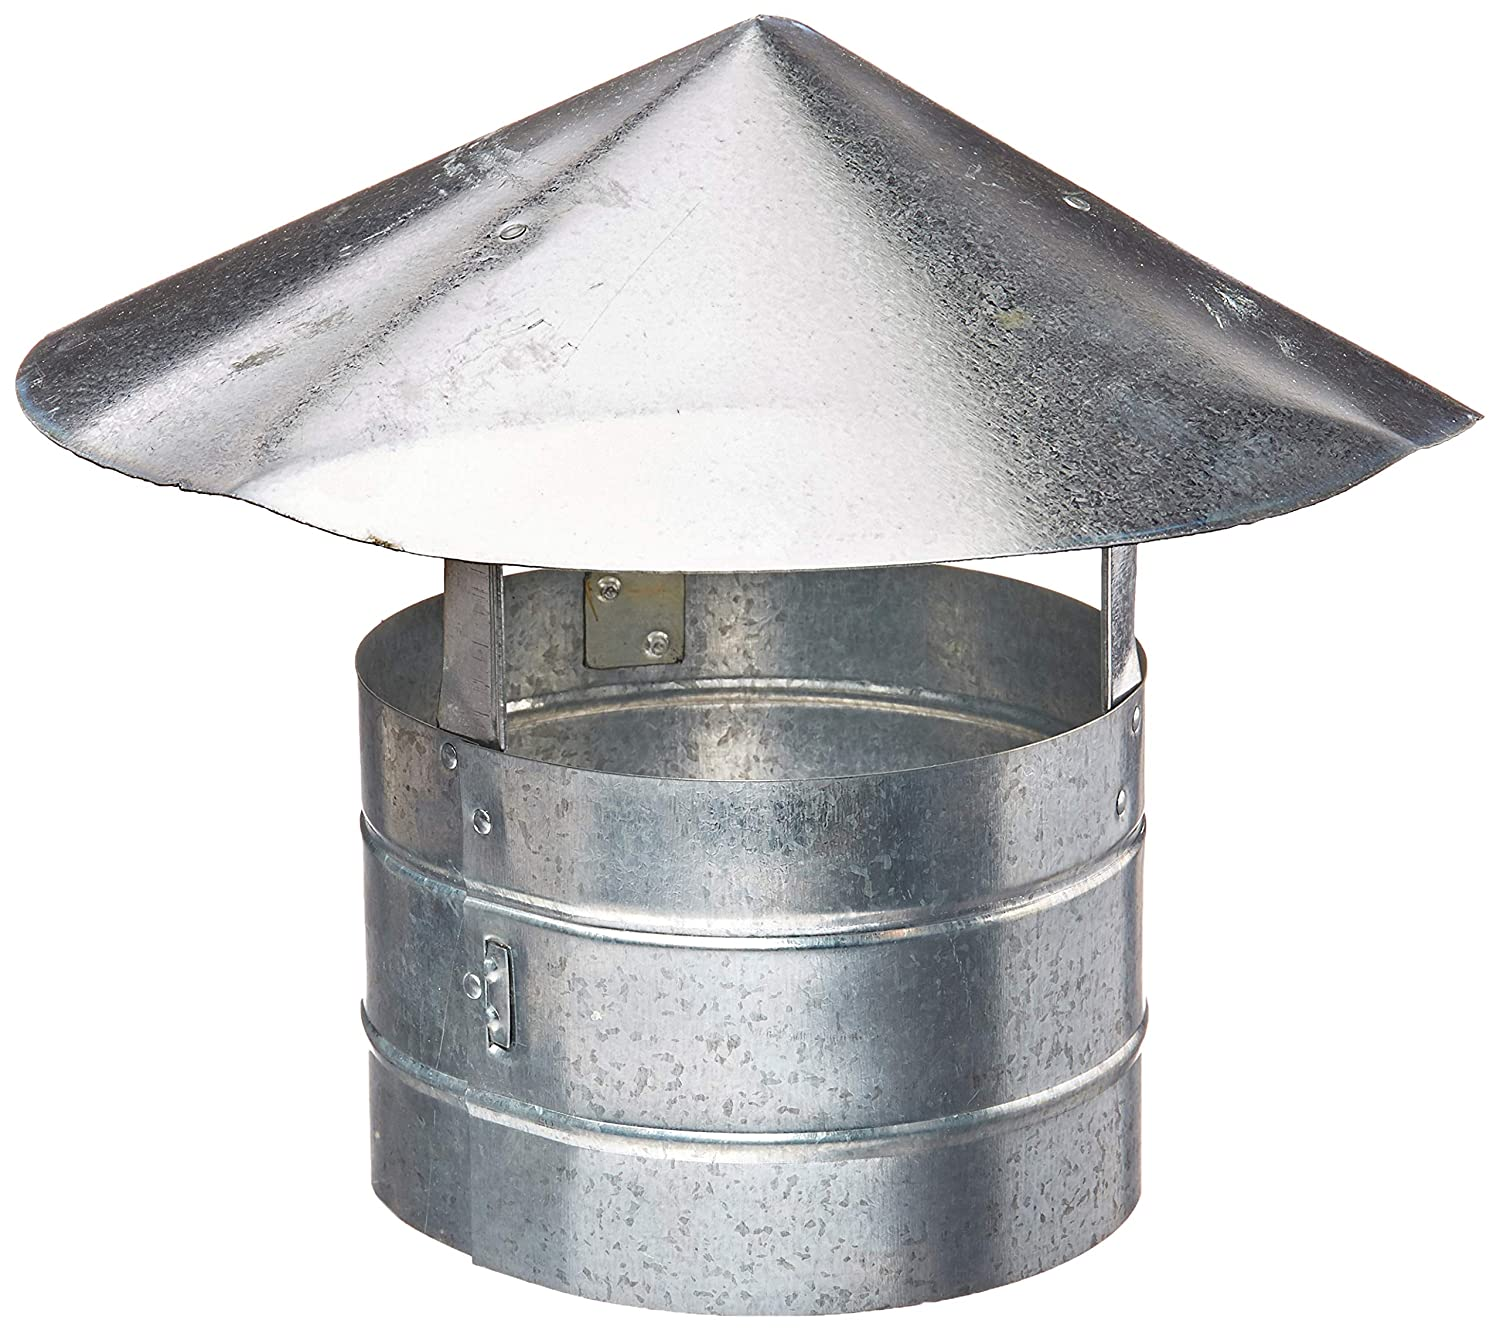 Billy Penn 8104 Galvanized Steel Roof Cap, 7